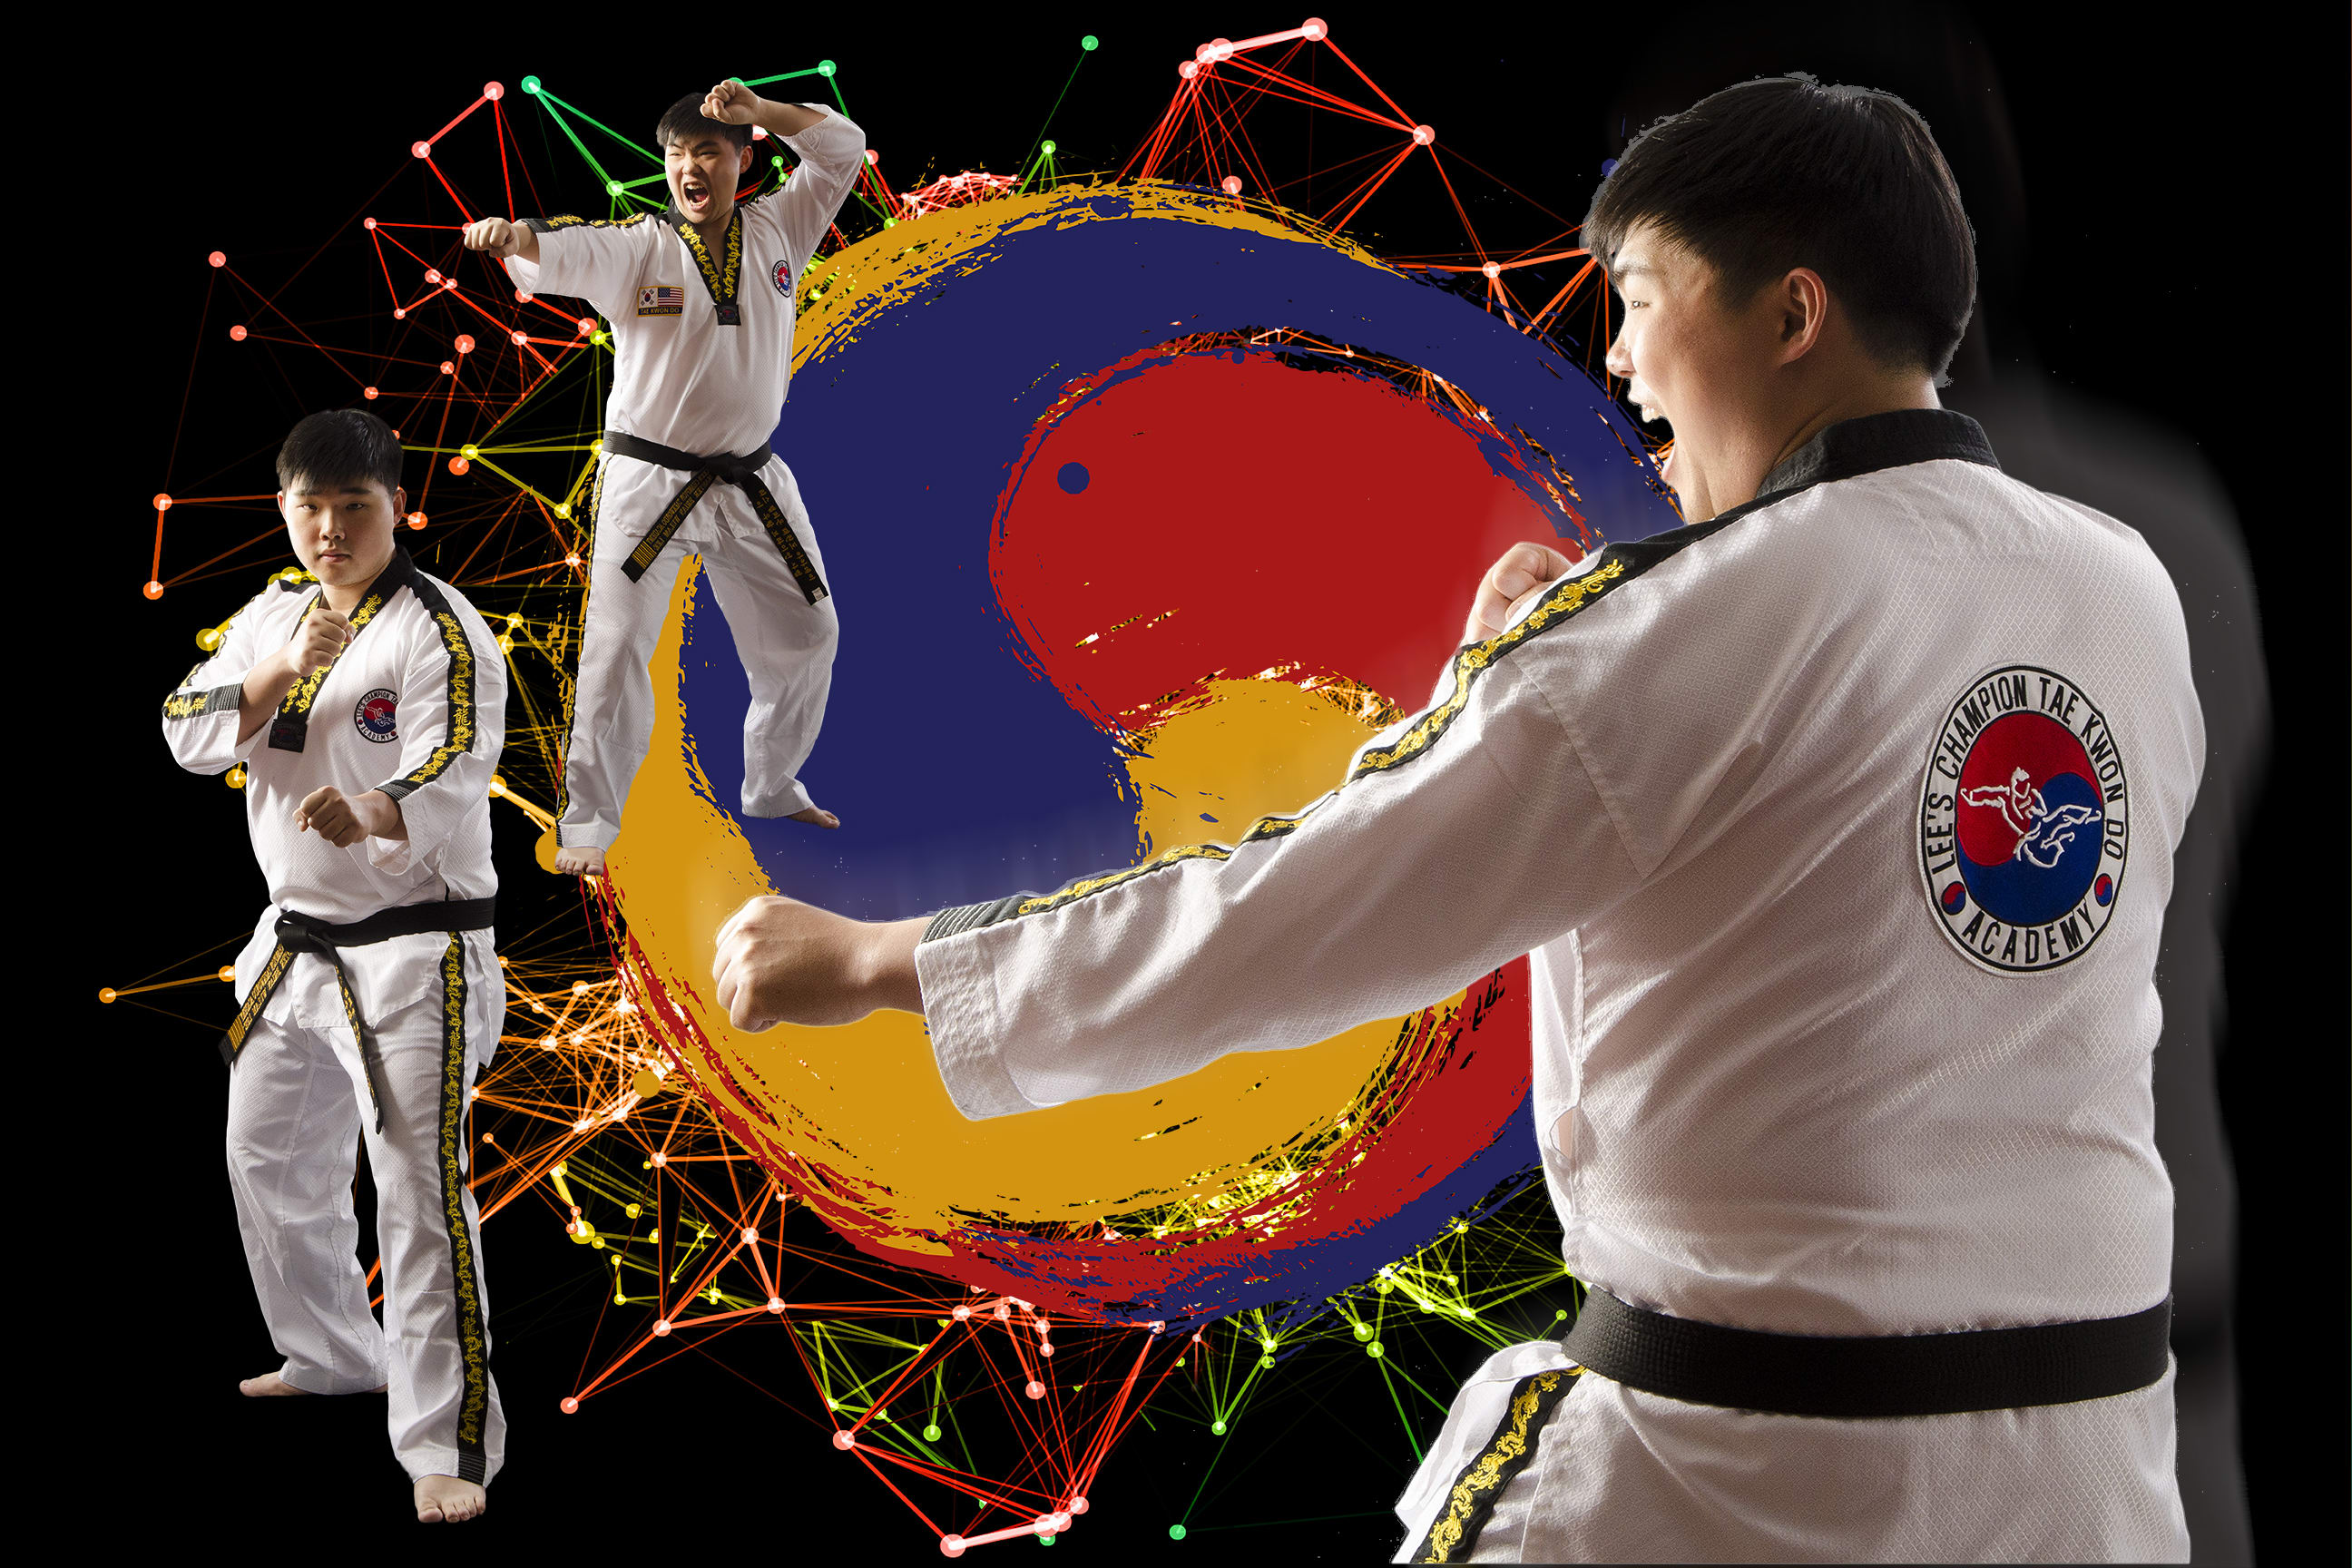 Master Brian Wulam Lee in Shoreview - Lee's Champion Taekwondo Academy